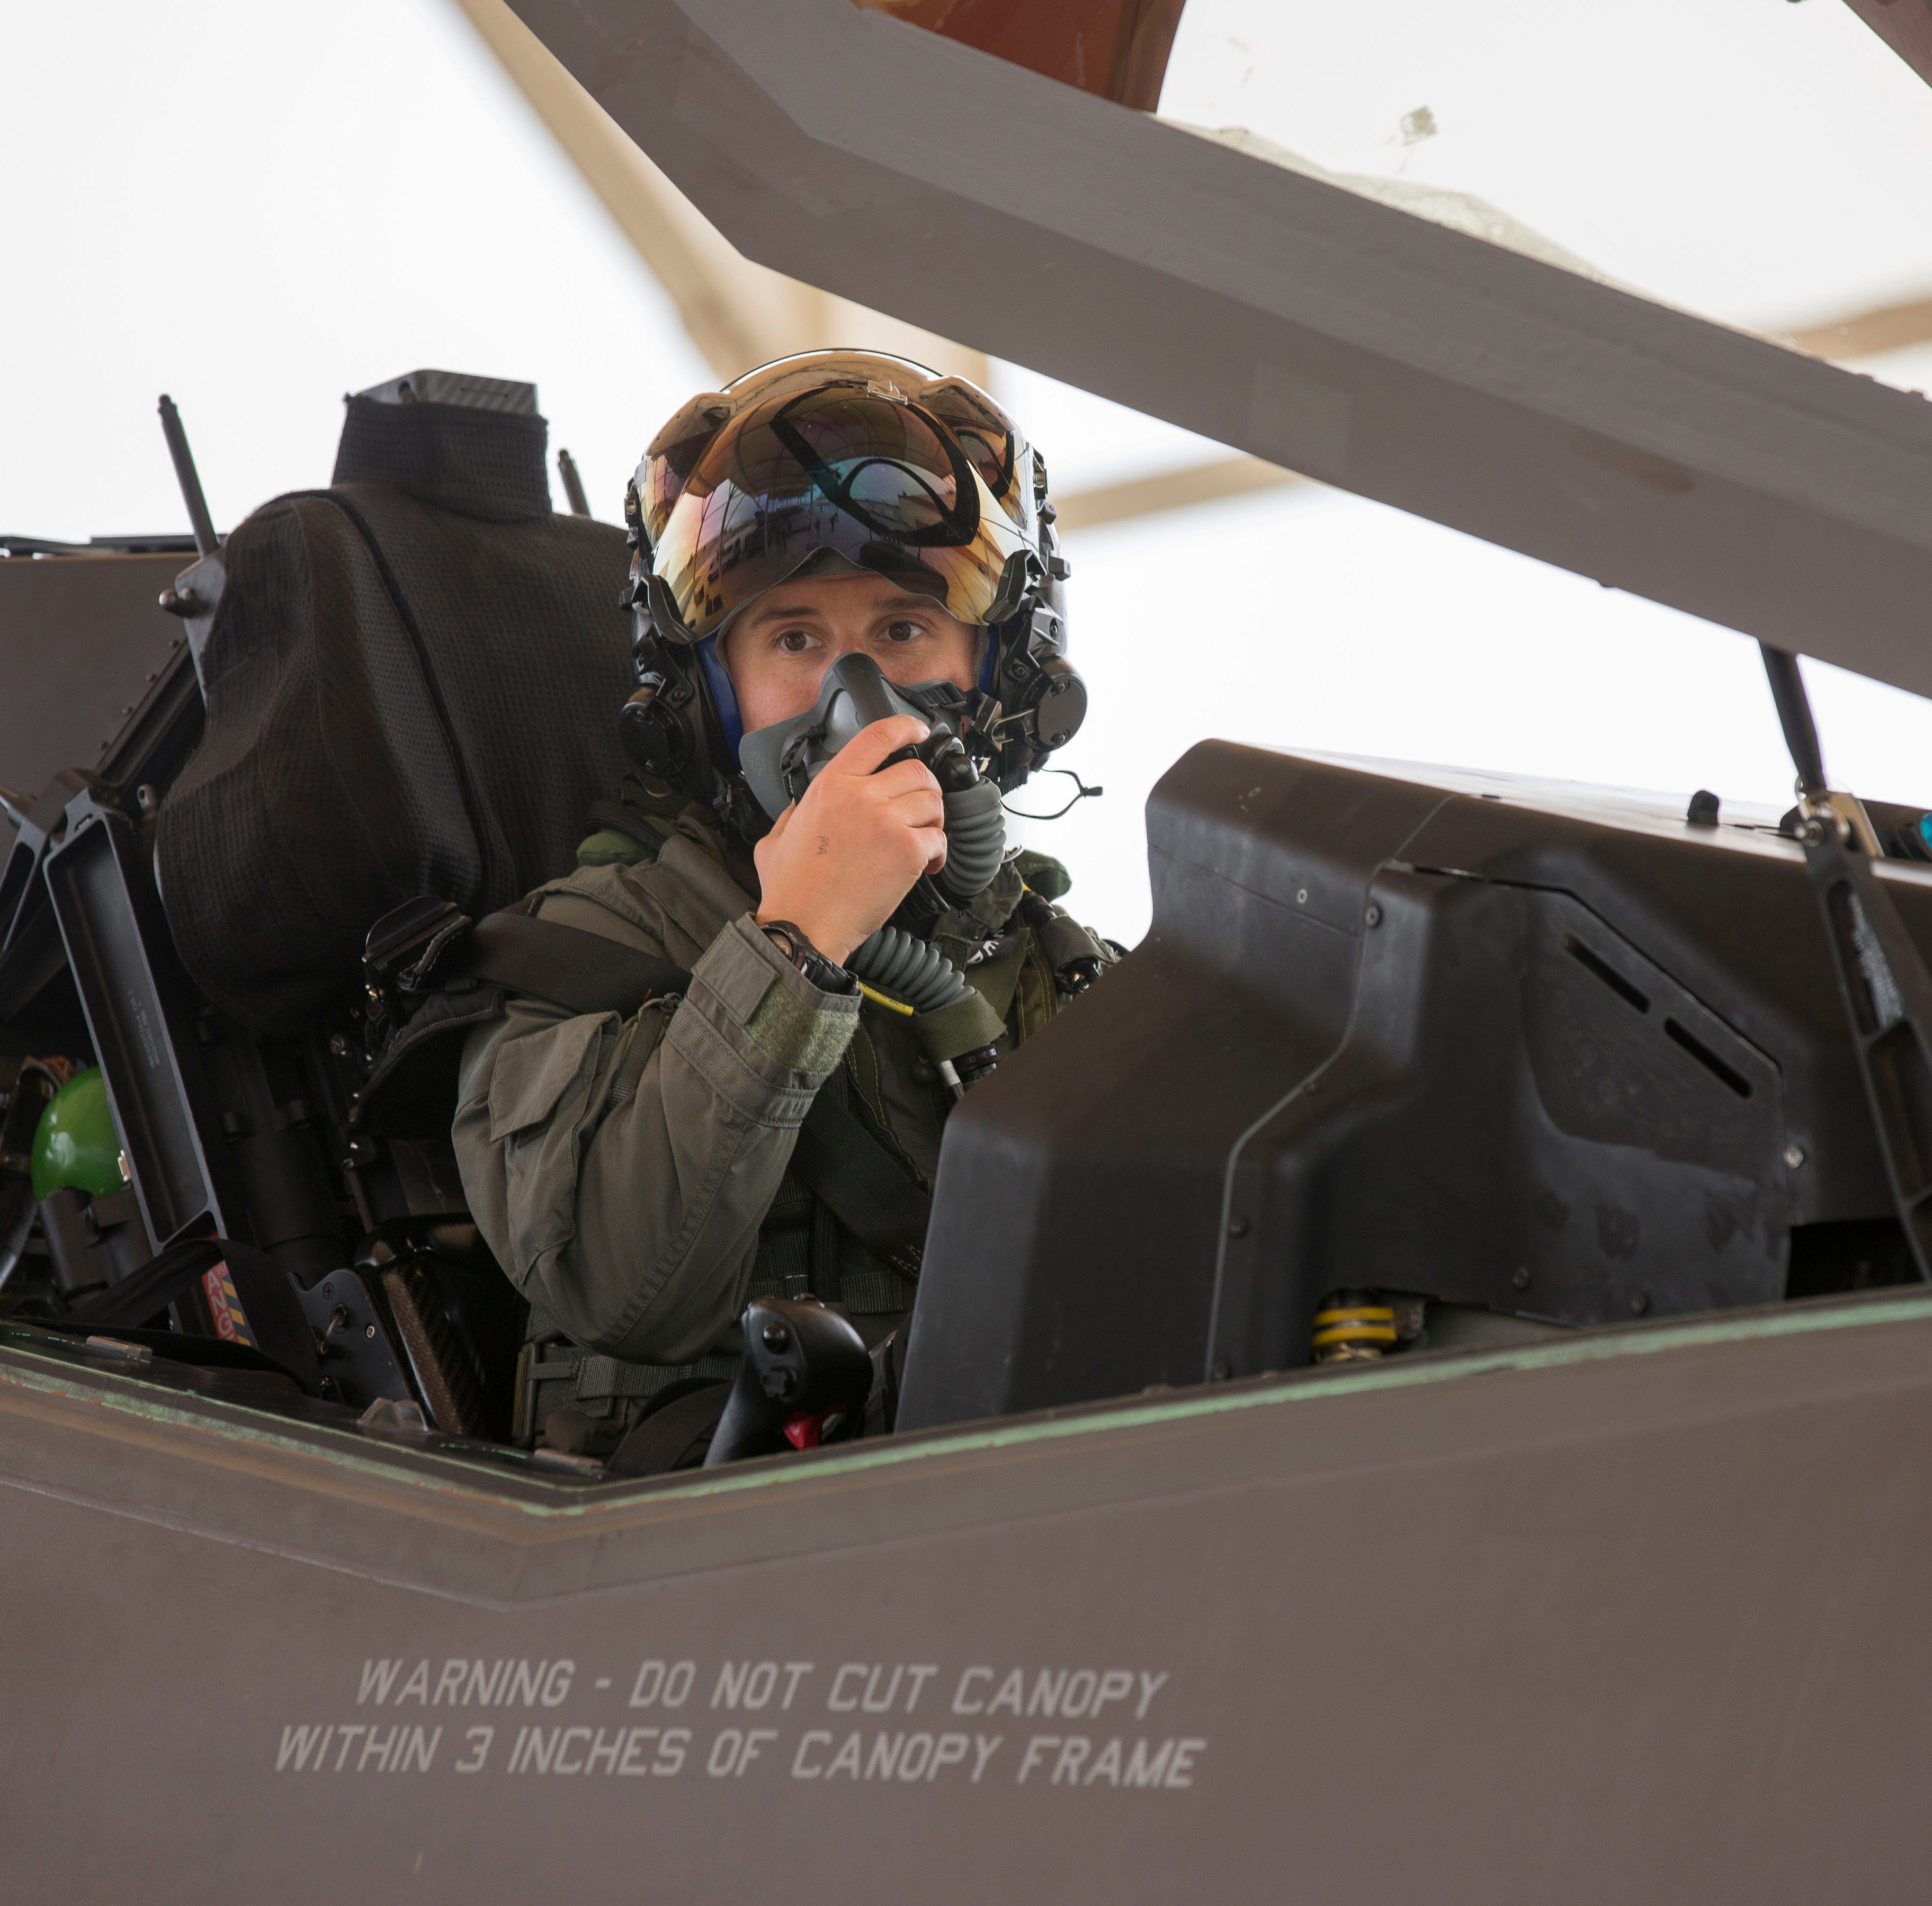 Fighter pilot: Green Bay's Rachael Winiecki becomes first female F-35 test pilot